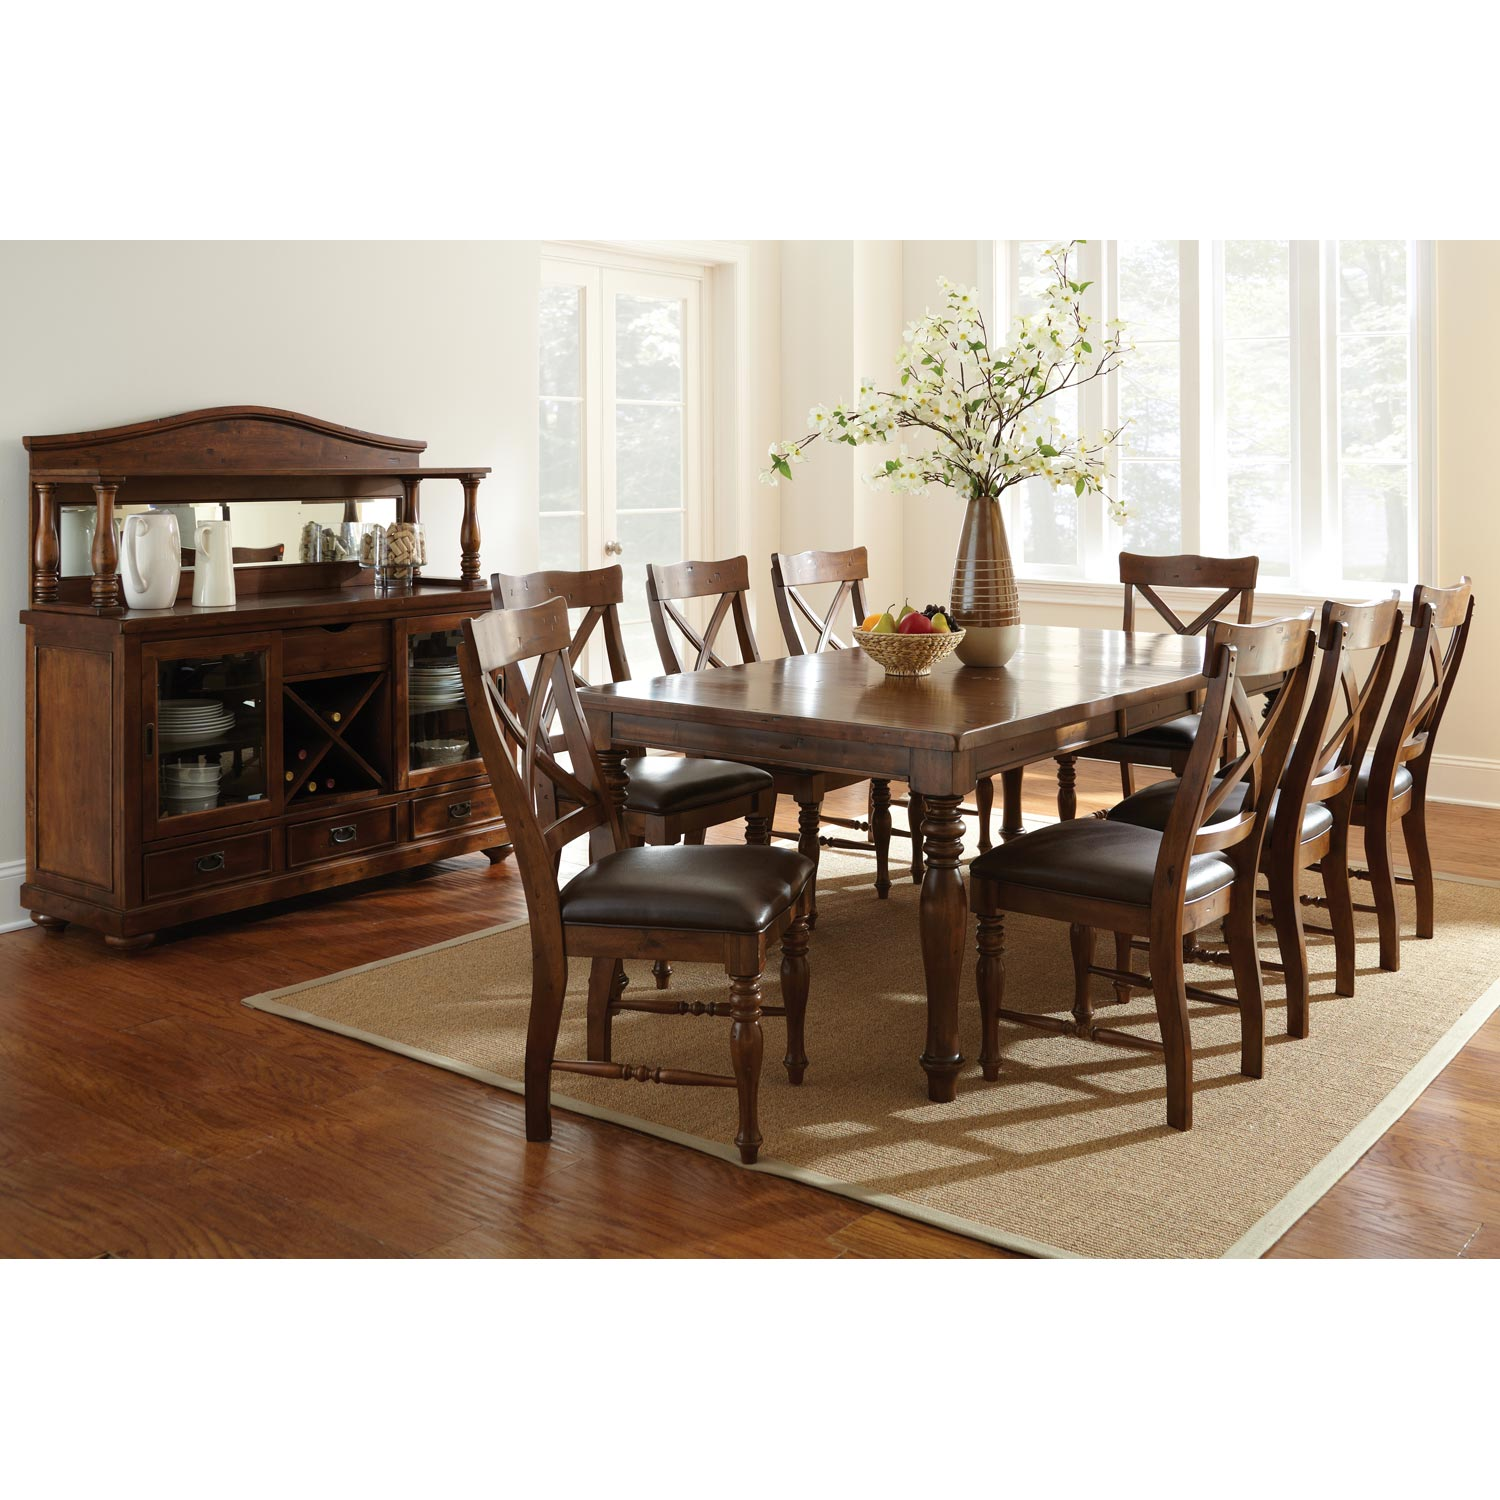 Wyndham Extension Dining Set - X Back Chairs, Tobacco Finish - SSC-WD500-9PC